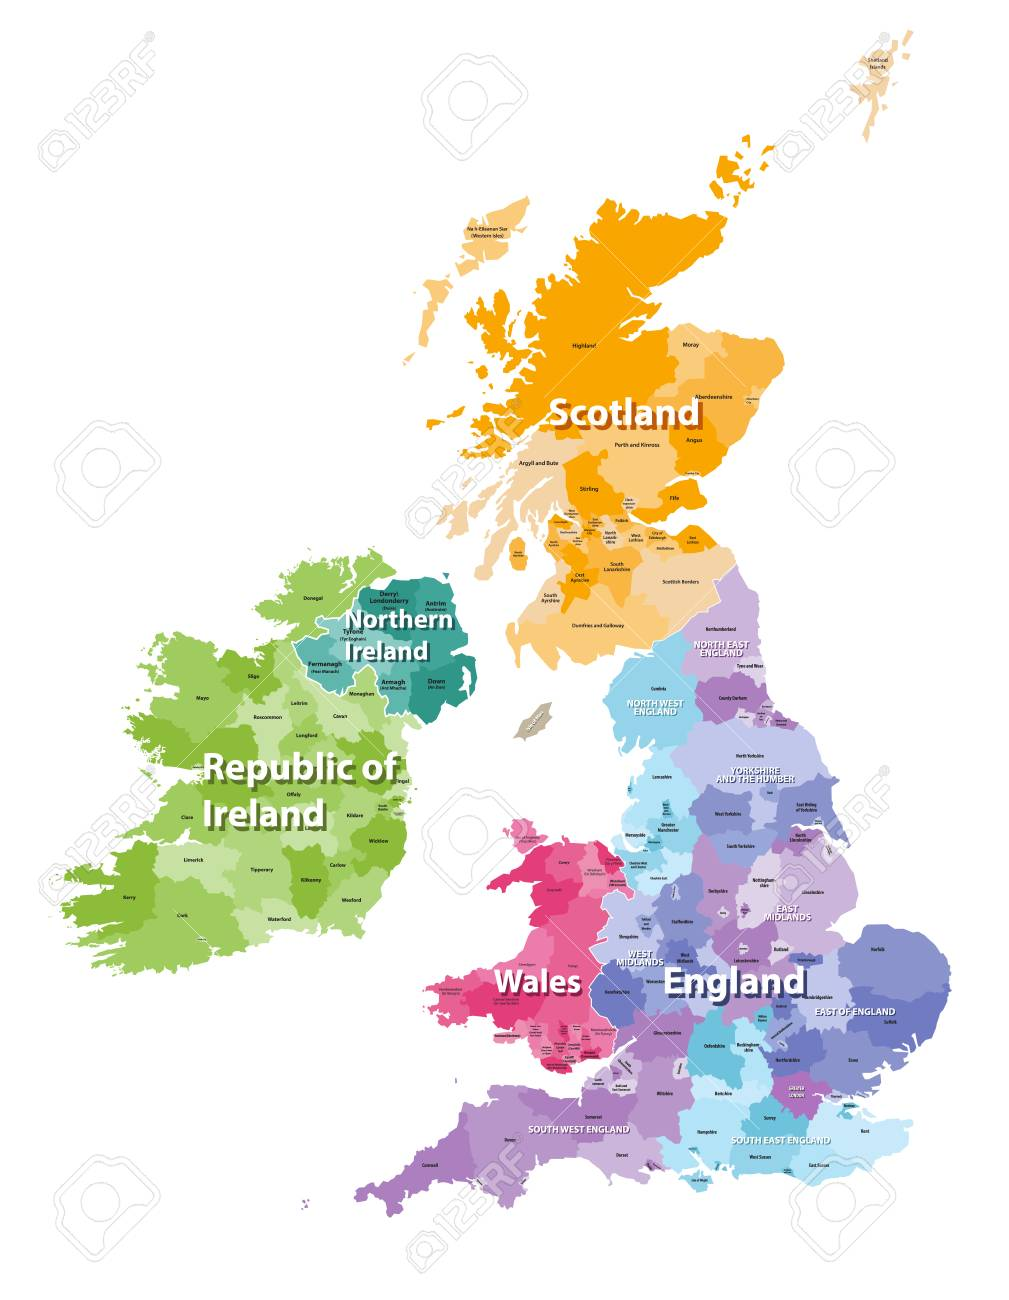 British Isles Map Colored By Countries And Regions Royalty Free ...